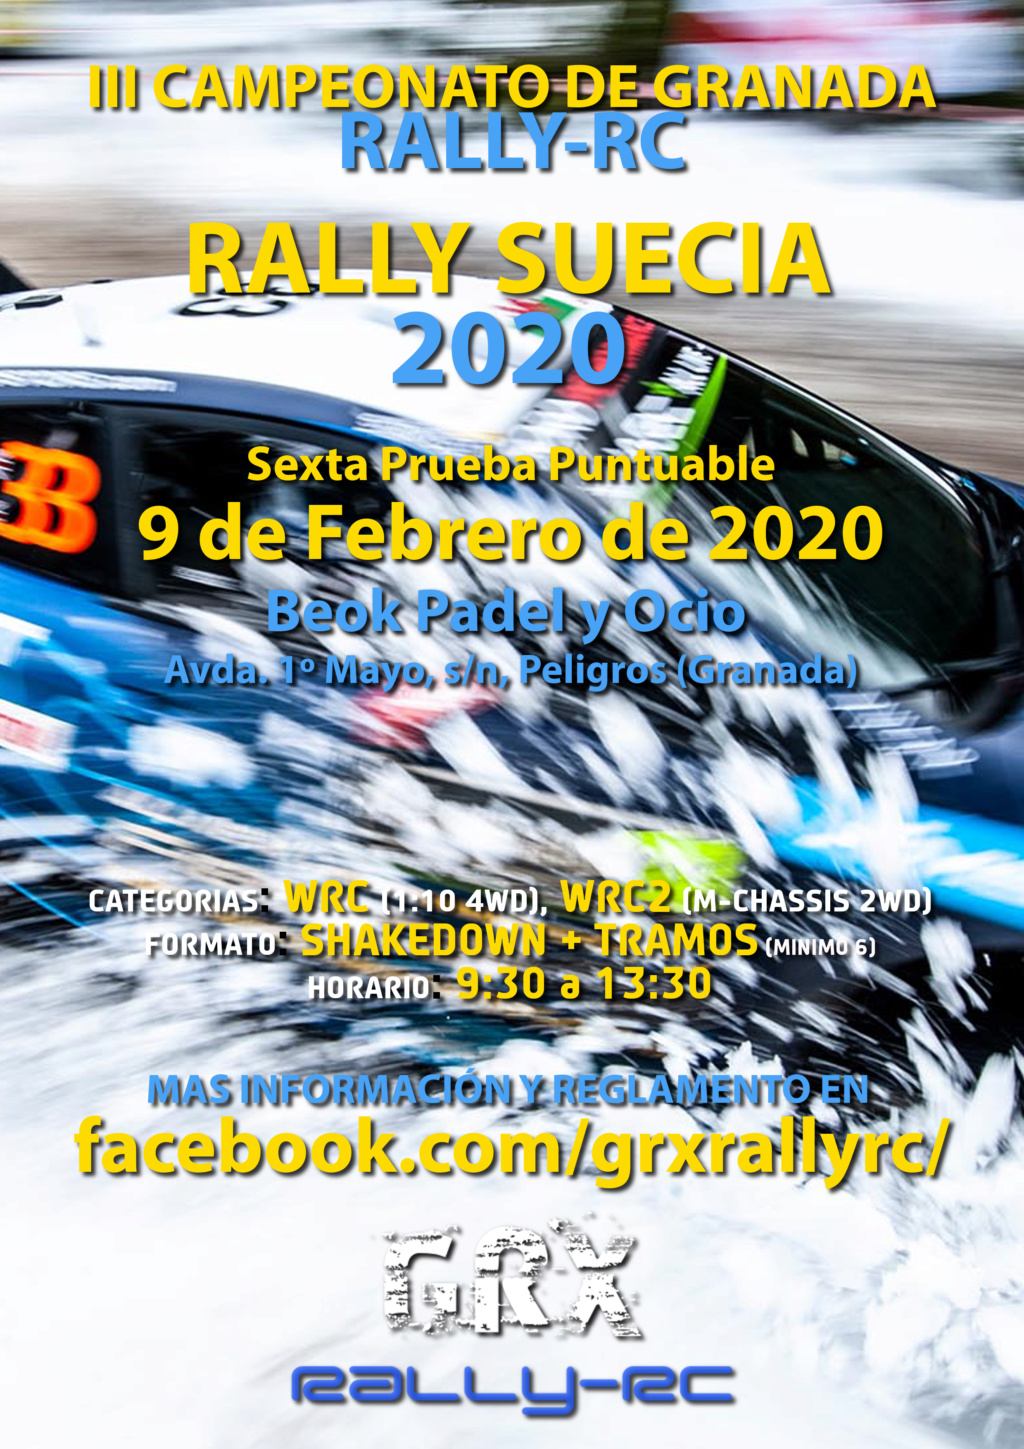 RALLY-RC 1/10 - Página 3 Cartel11